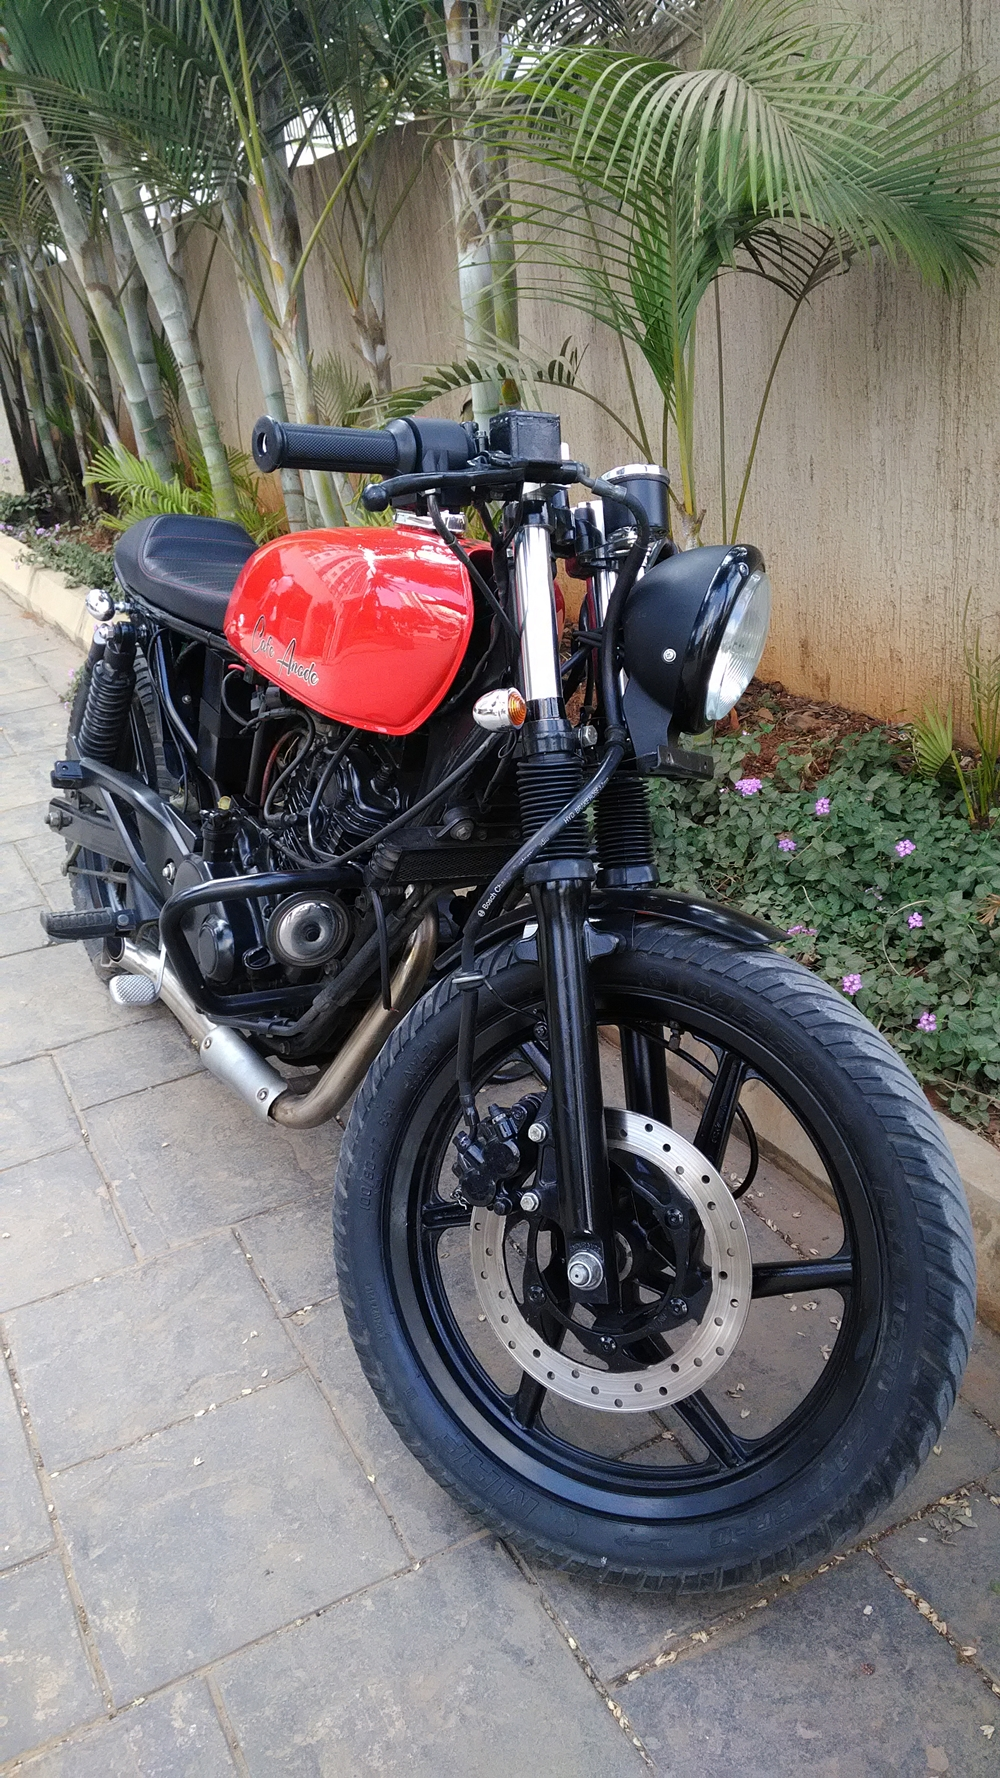 Bajaj Pulsar 200 Cafe Racer by Adromeda Custom Motorcycles